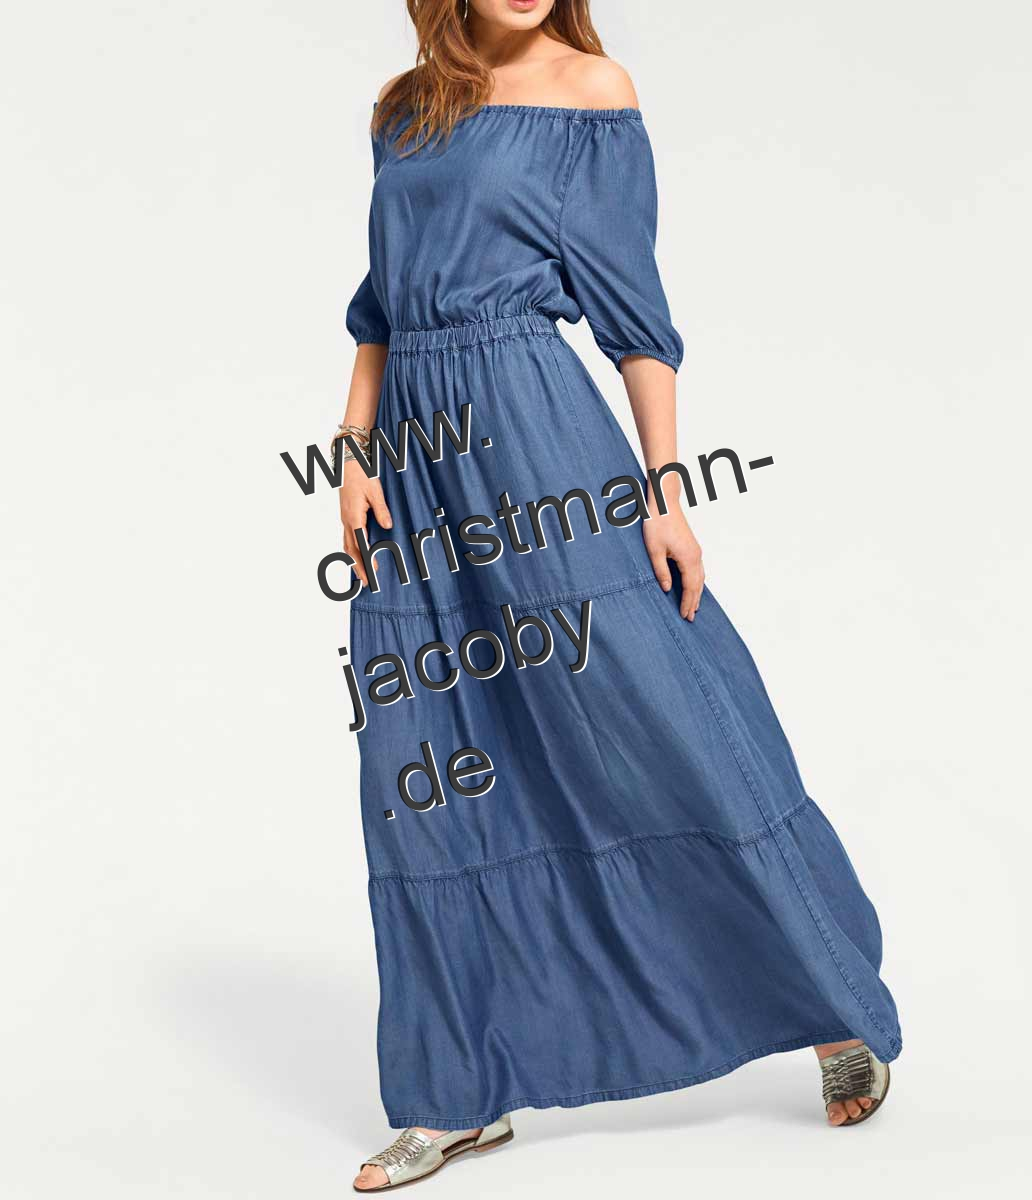 Maxikleid, blue-denim